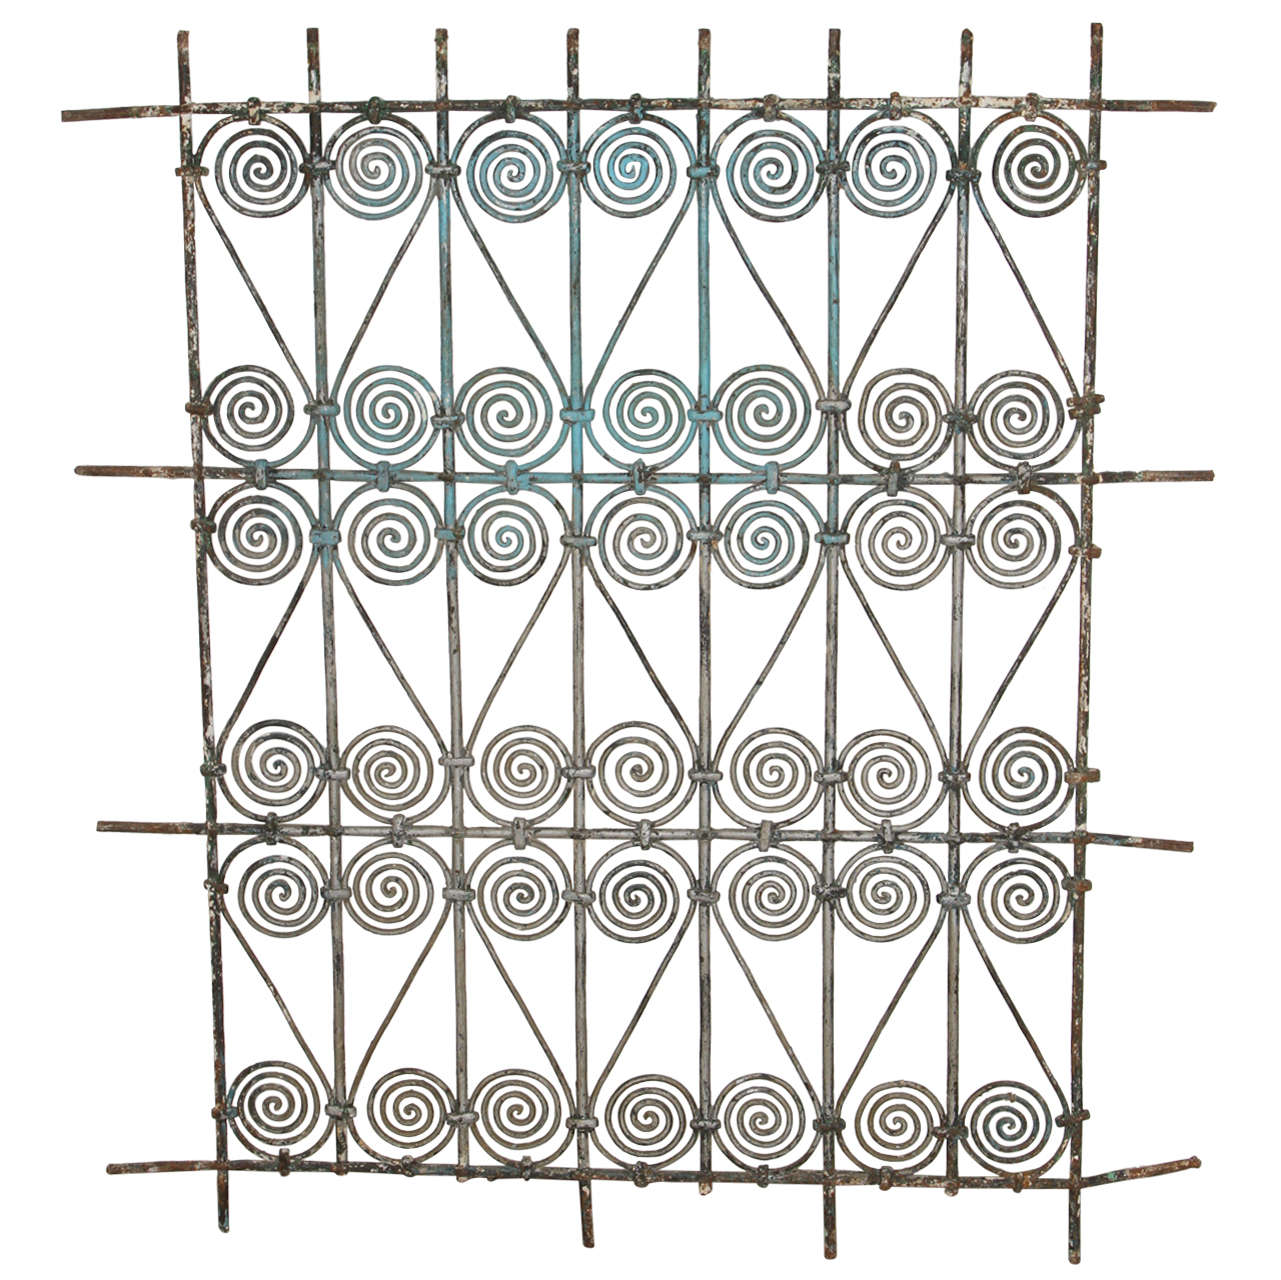 Antique Moroccan Moorish Wrought Iron Window Grille at 1stdibs